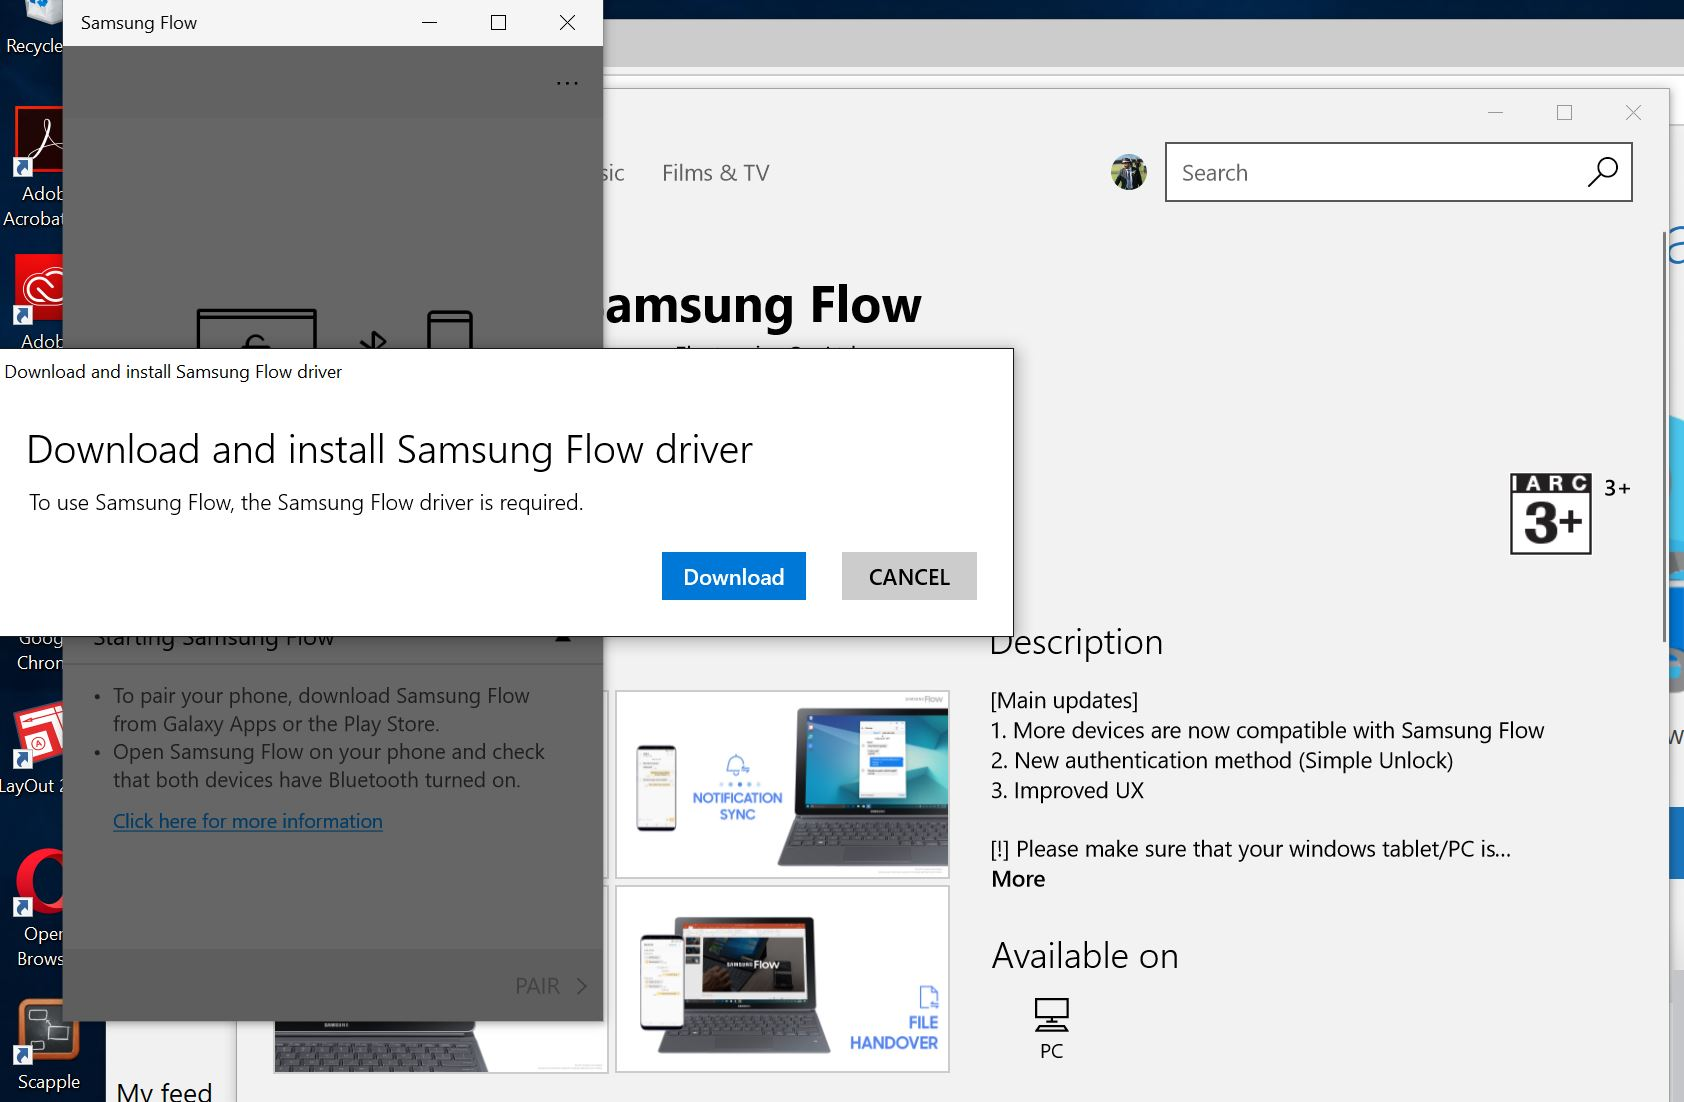 Windows Hello comes to more PCs if you own a Samsung phone